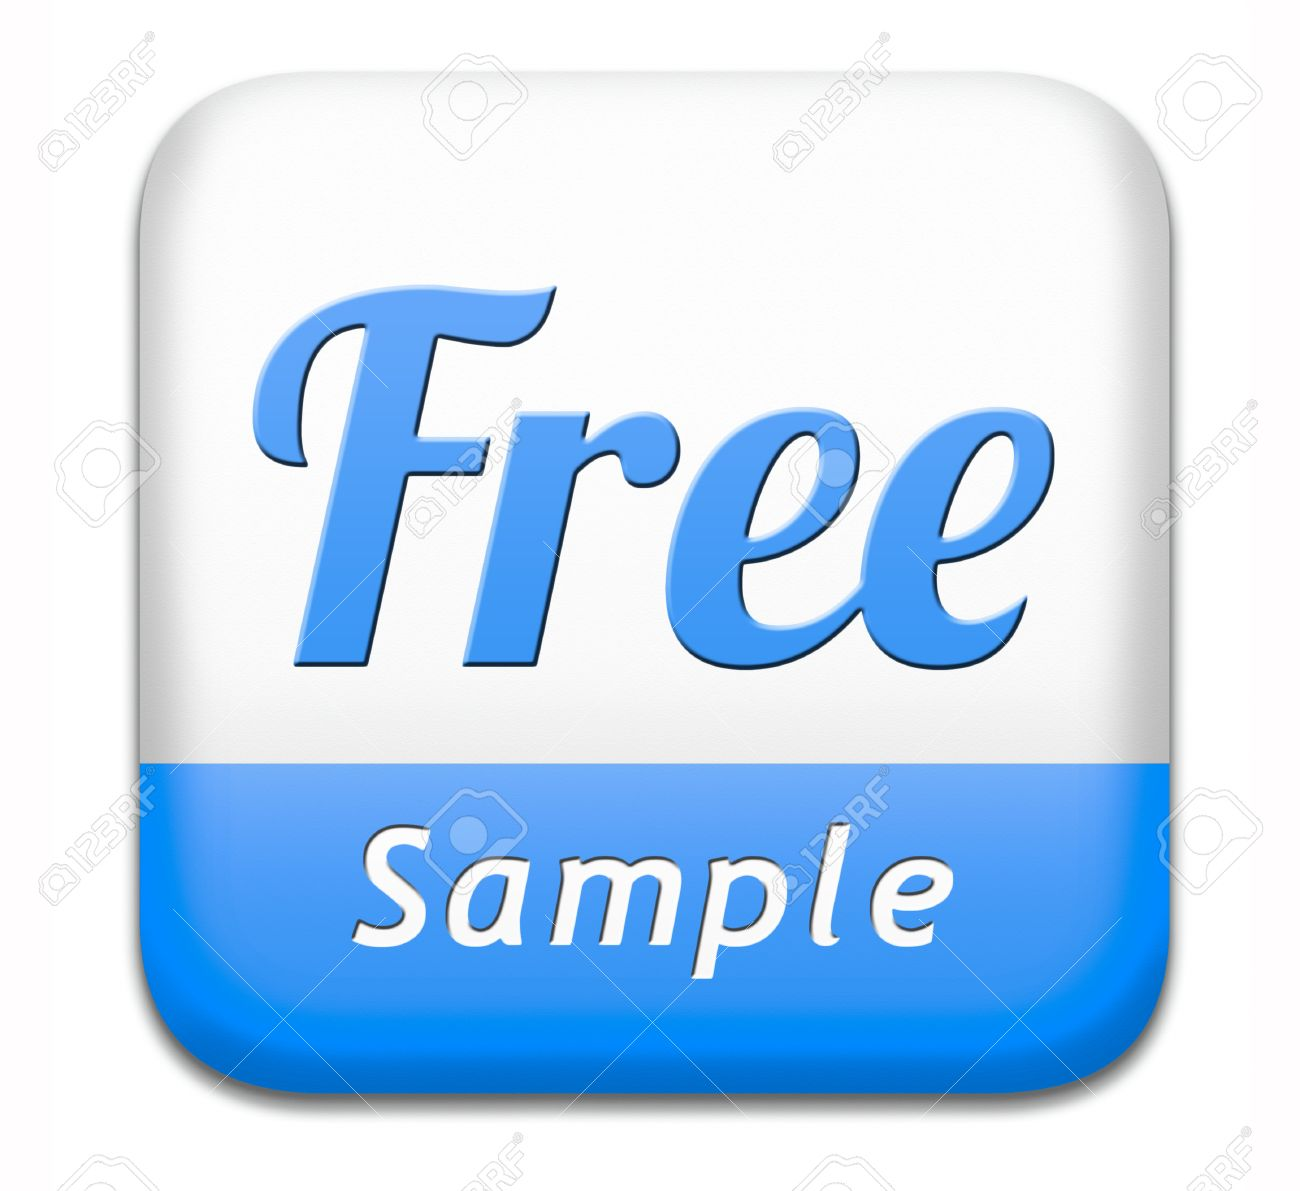 free product sample offer or gratis download webshop button or web shop icon or sticker stock